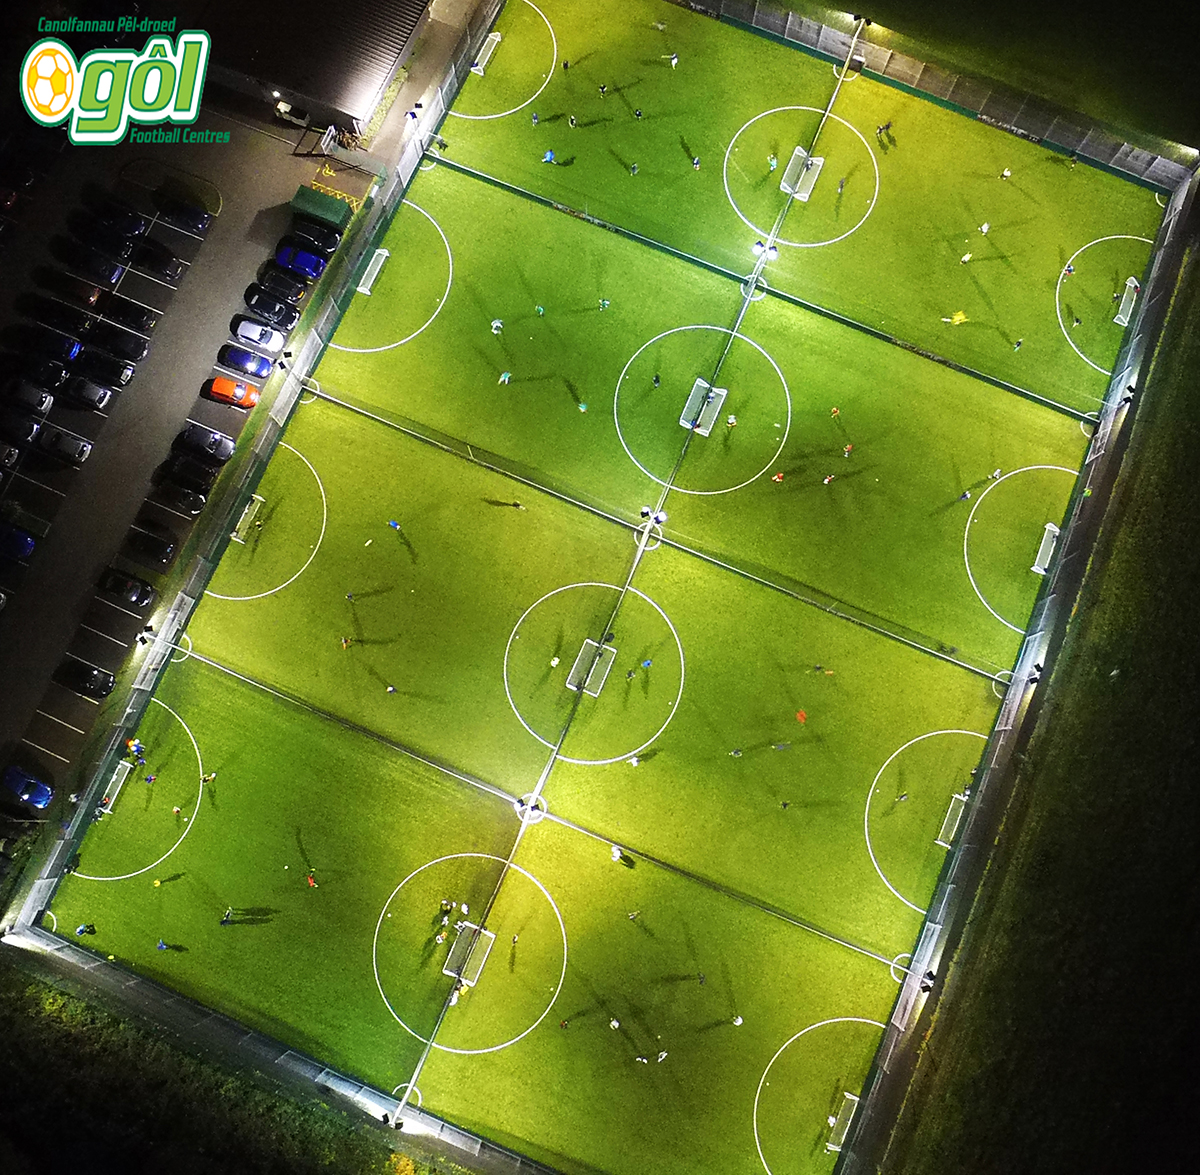 book a 5-a-side pitch in Cardiff